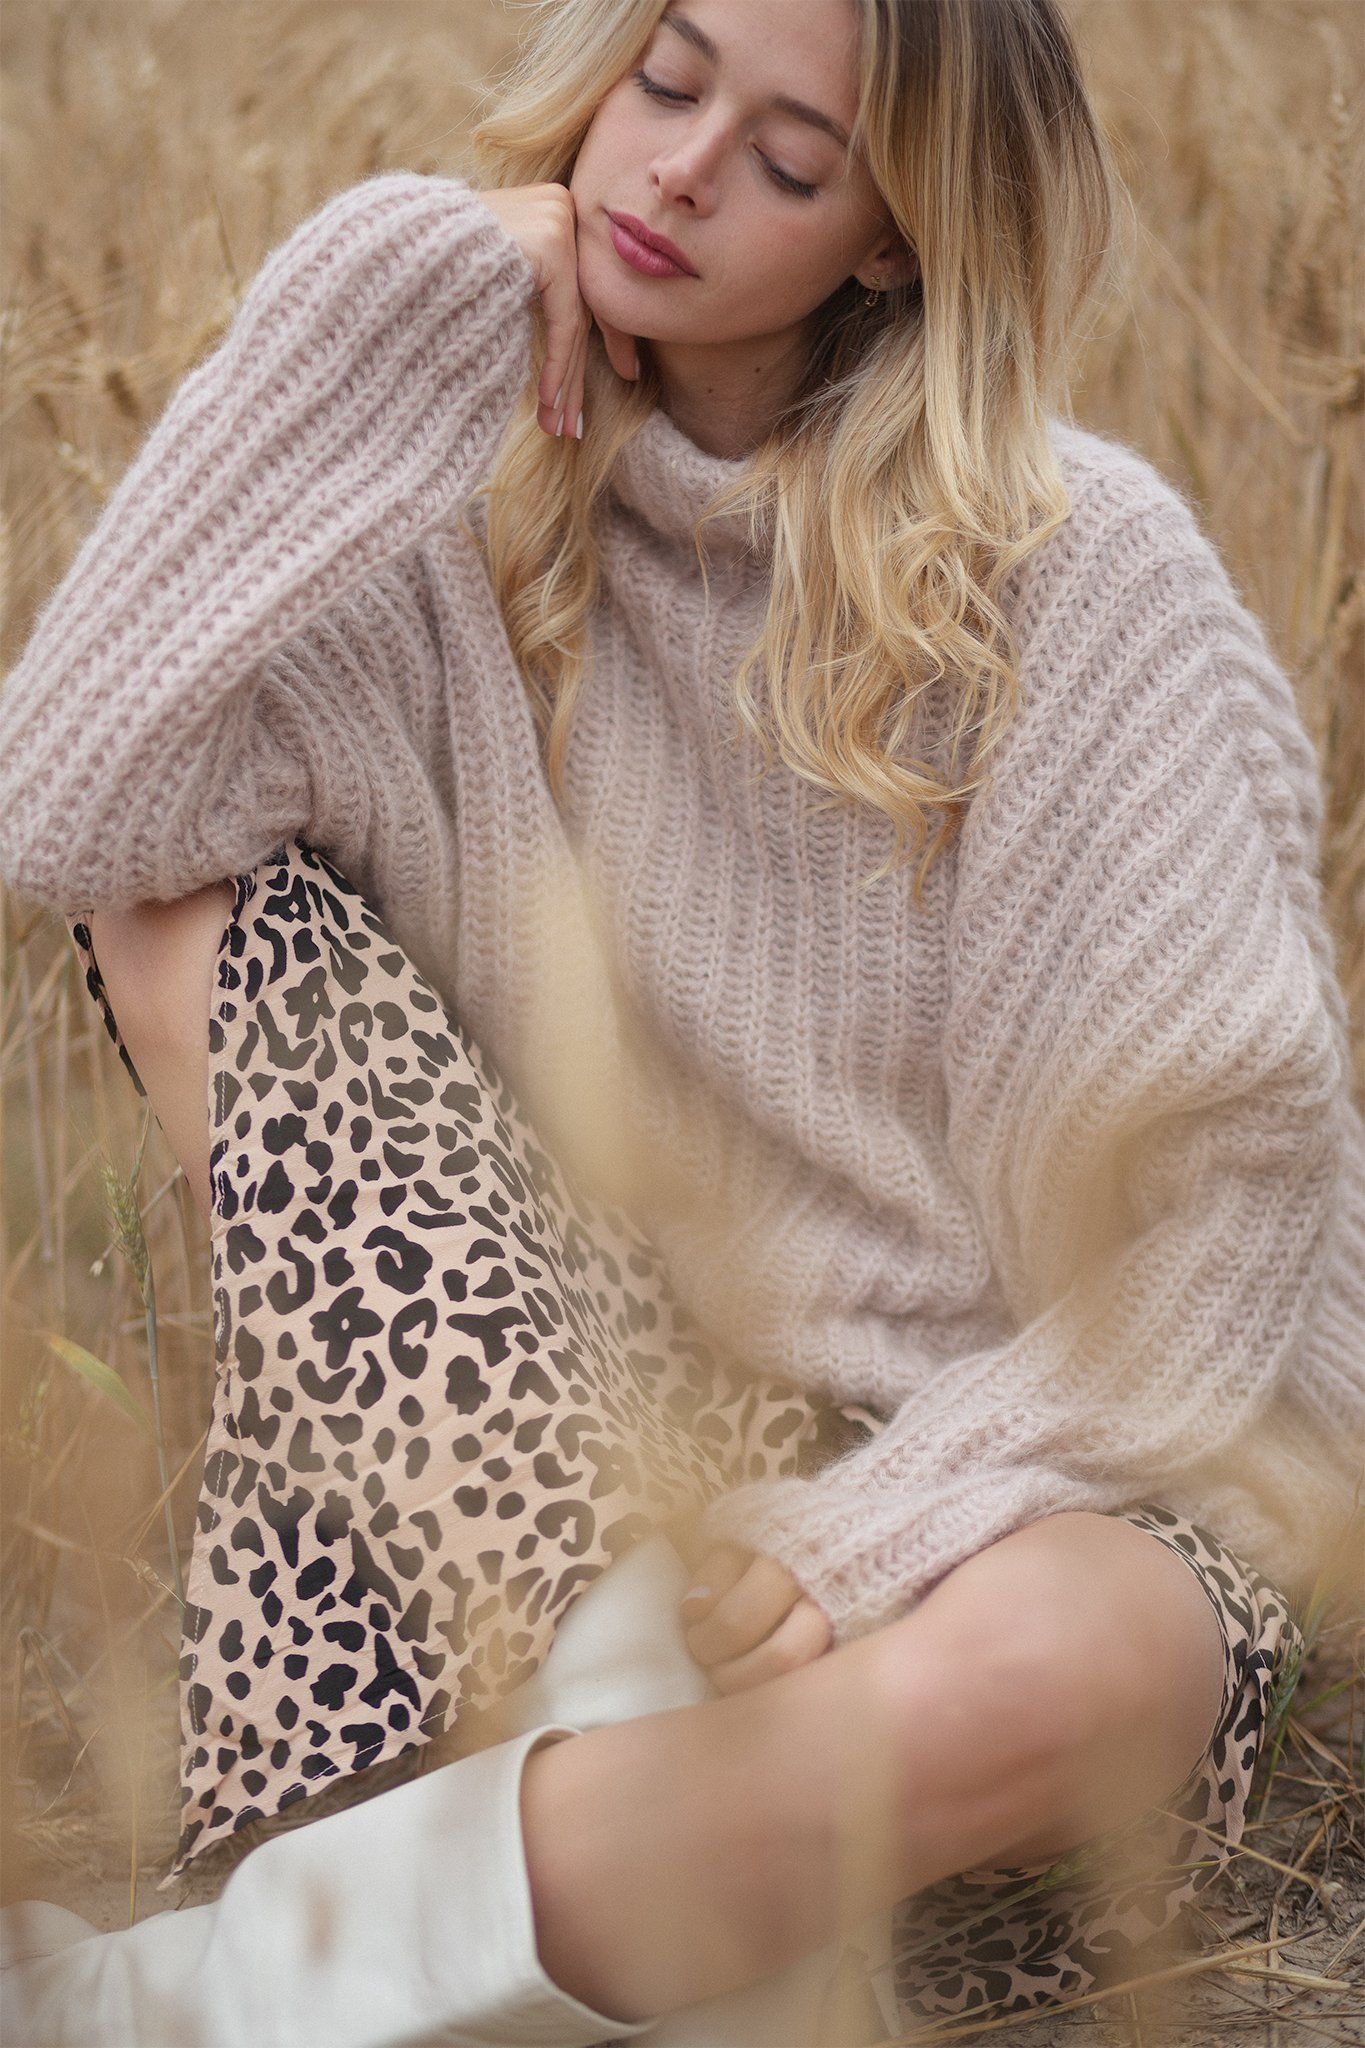 Lilou Sweater - Beige, [product_type]- Poppy Field the label